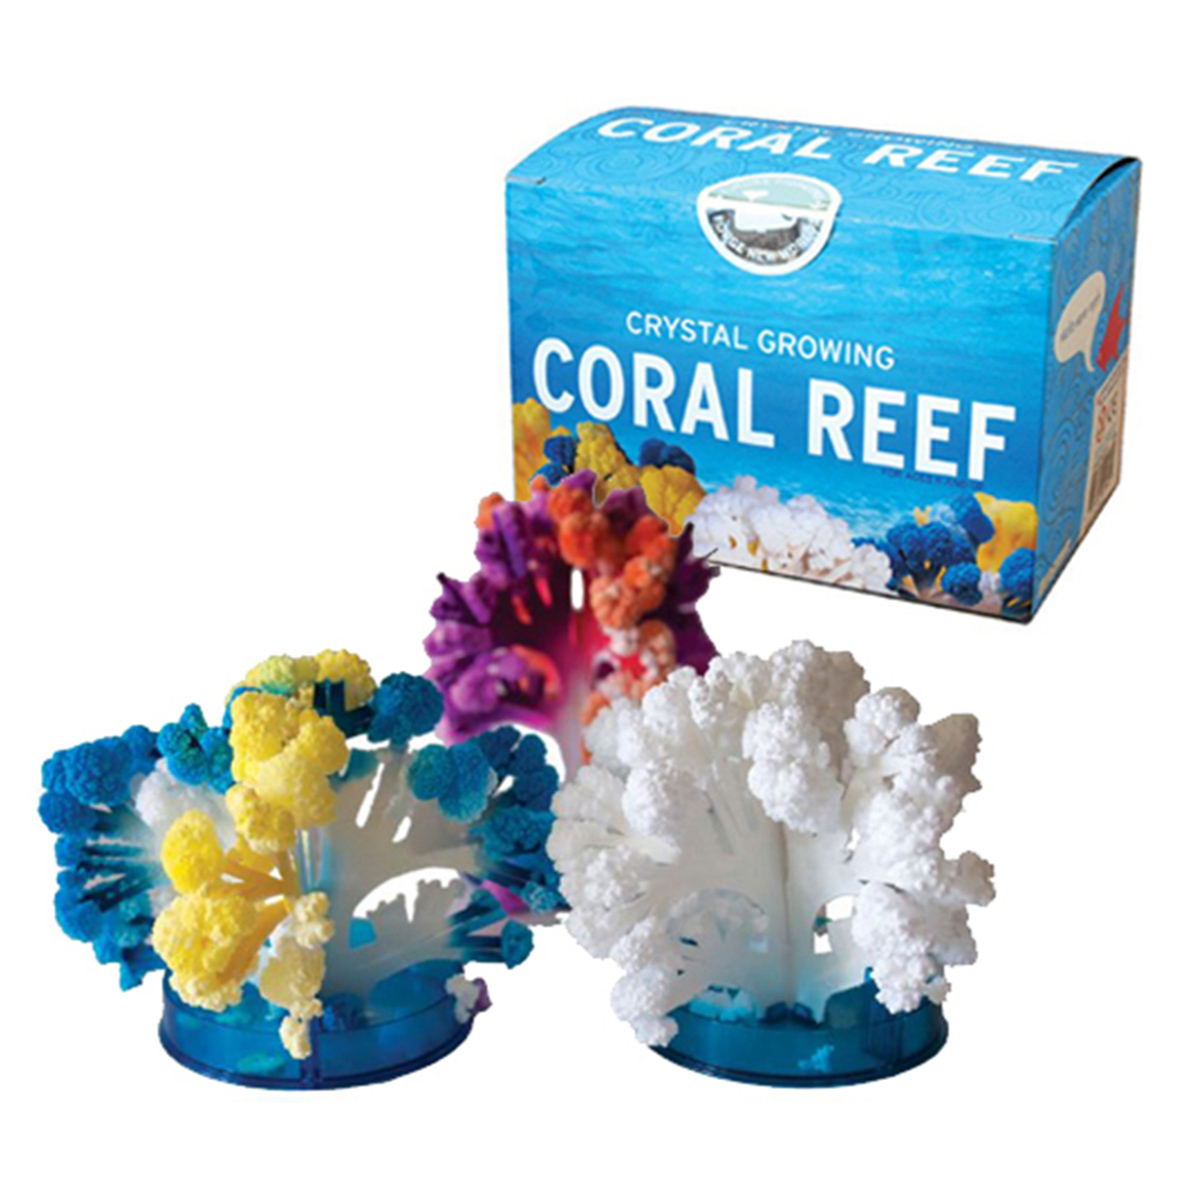 Coral Reef Kit educational Gifts for Kids